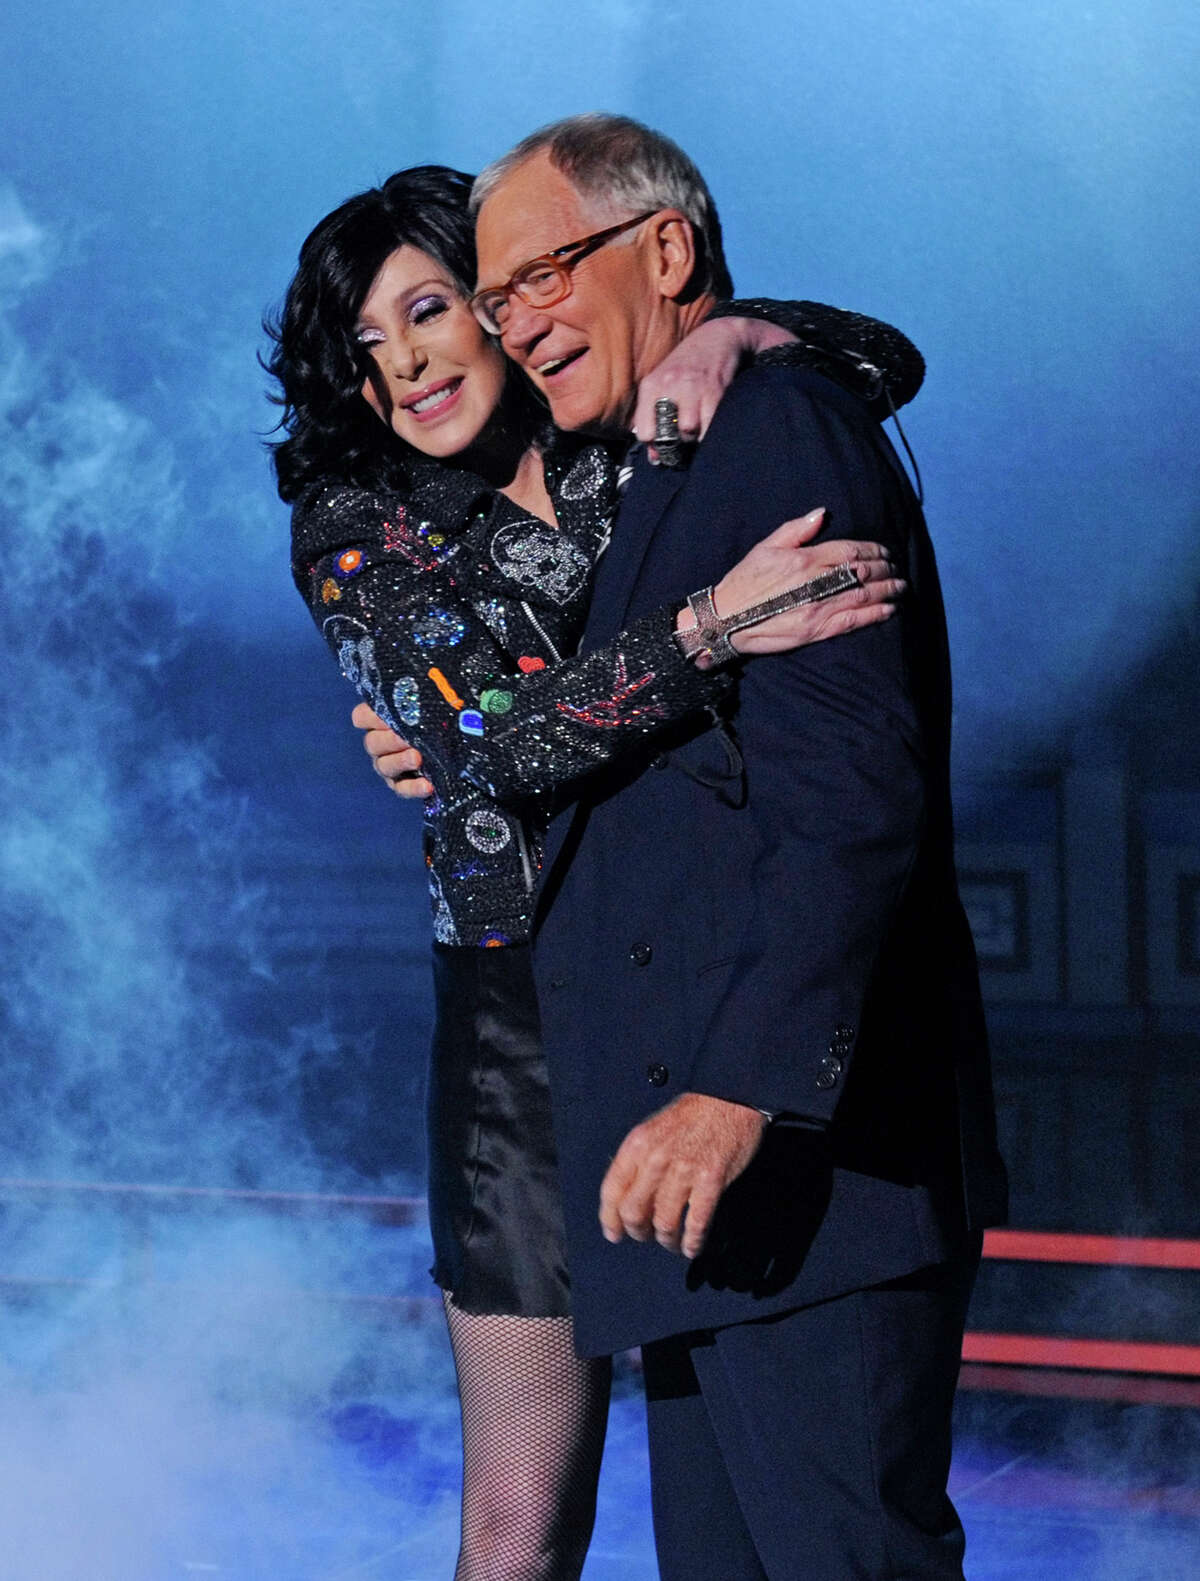 FILE - In this Sept. 24, 2013 file photo provided by CBS, Cher embraces host David Letterman after she performed a song off her new album, on